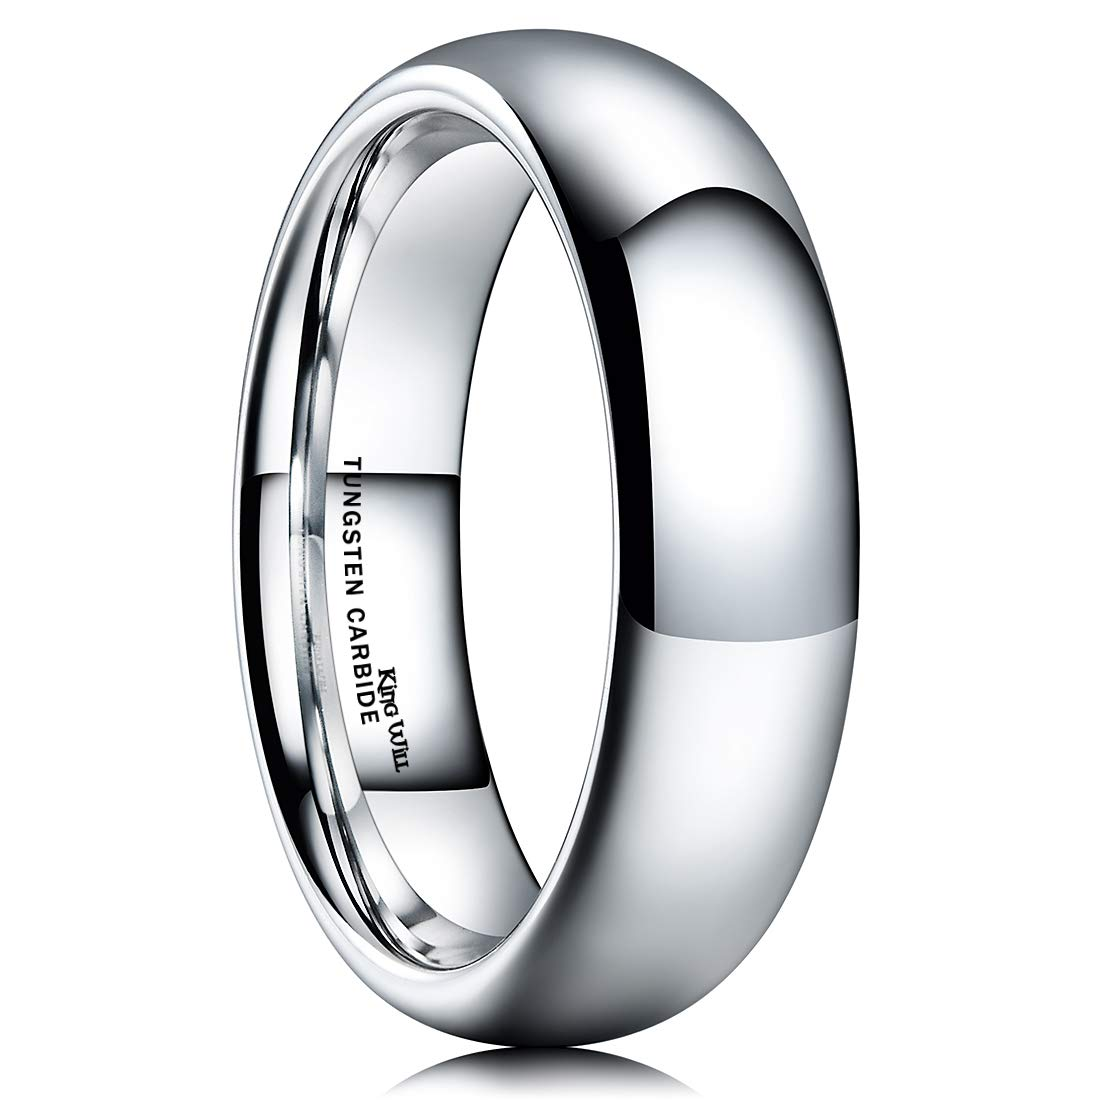 King Will Basic Men's 6mm High Polished Comfort Fit Domed Tungsten Carbide Ring Wedding Band 10